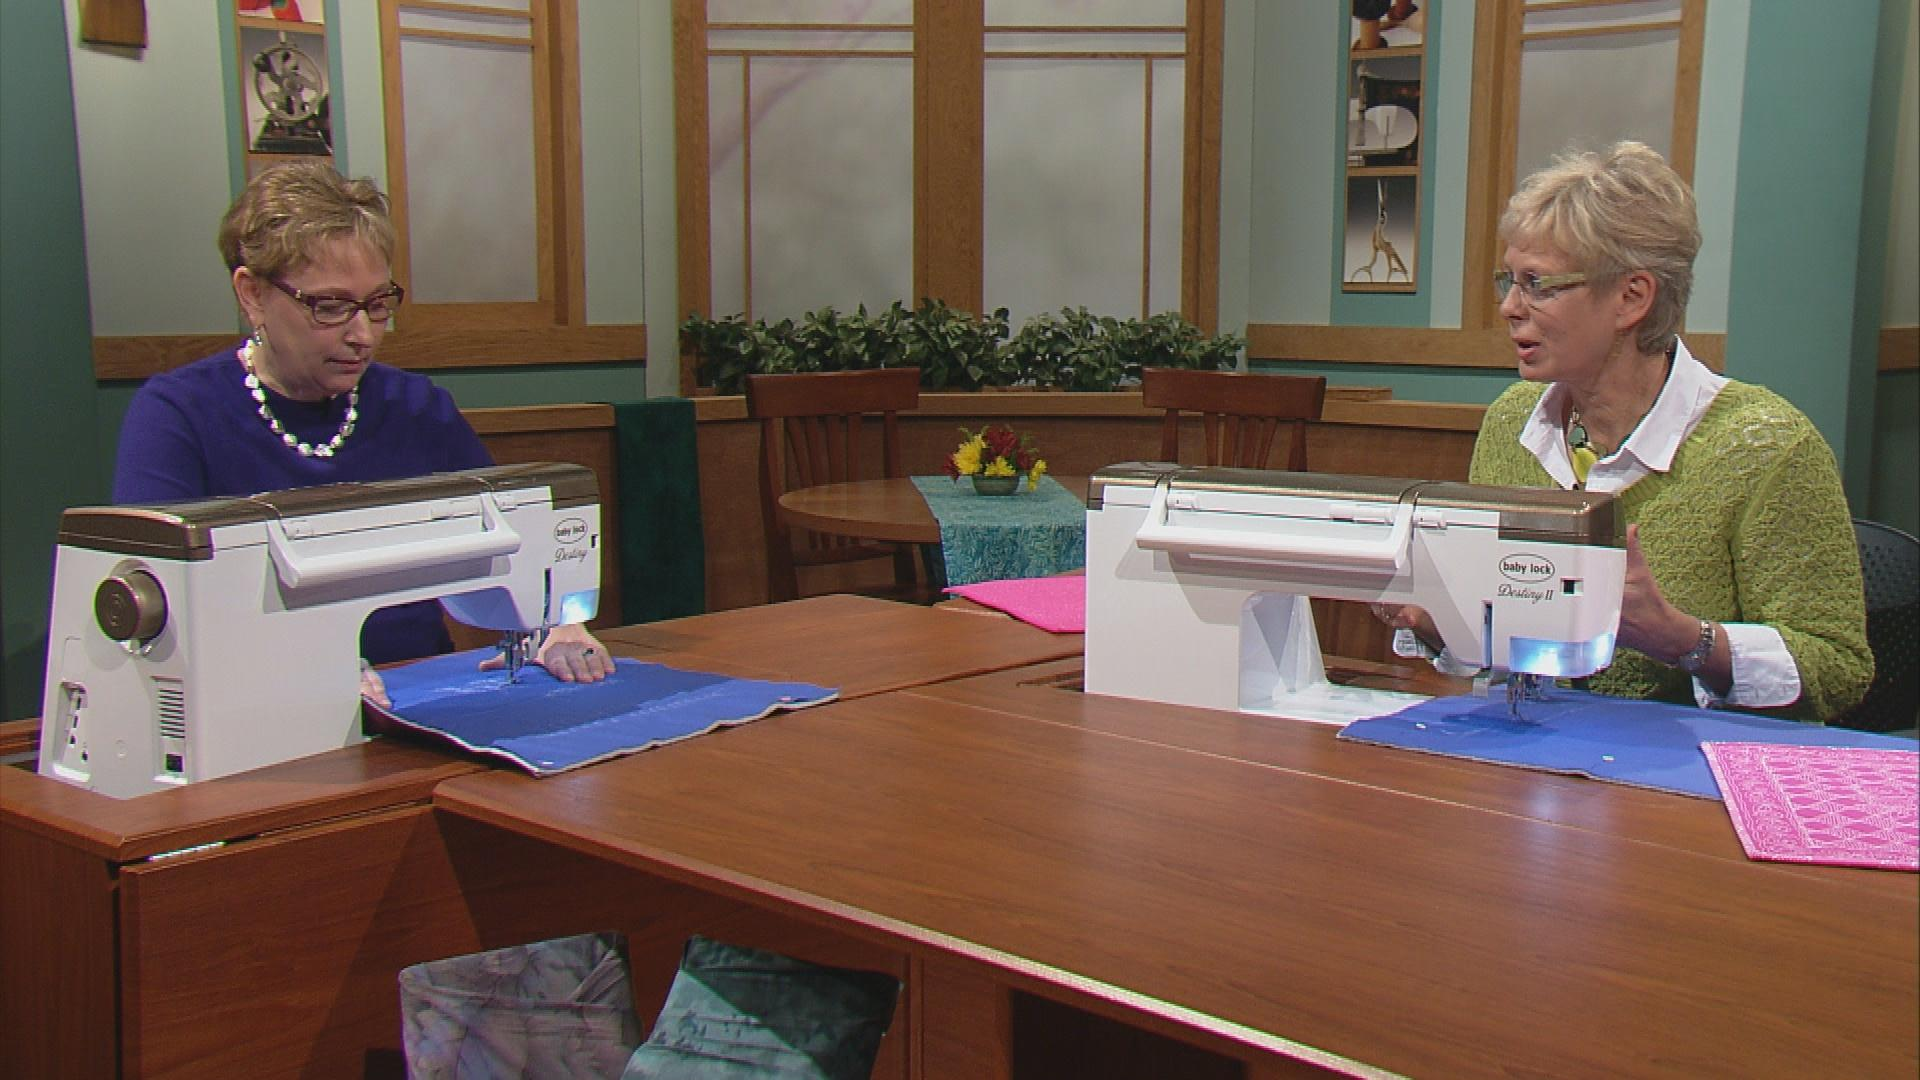 Sewing with nancy pbs sewing with nancy free motion quilting 1 2 3 part 1 jeuxipadfo Image collections